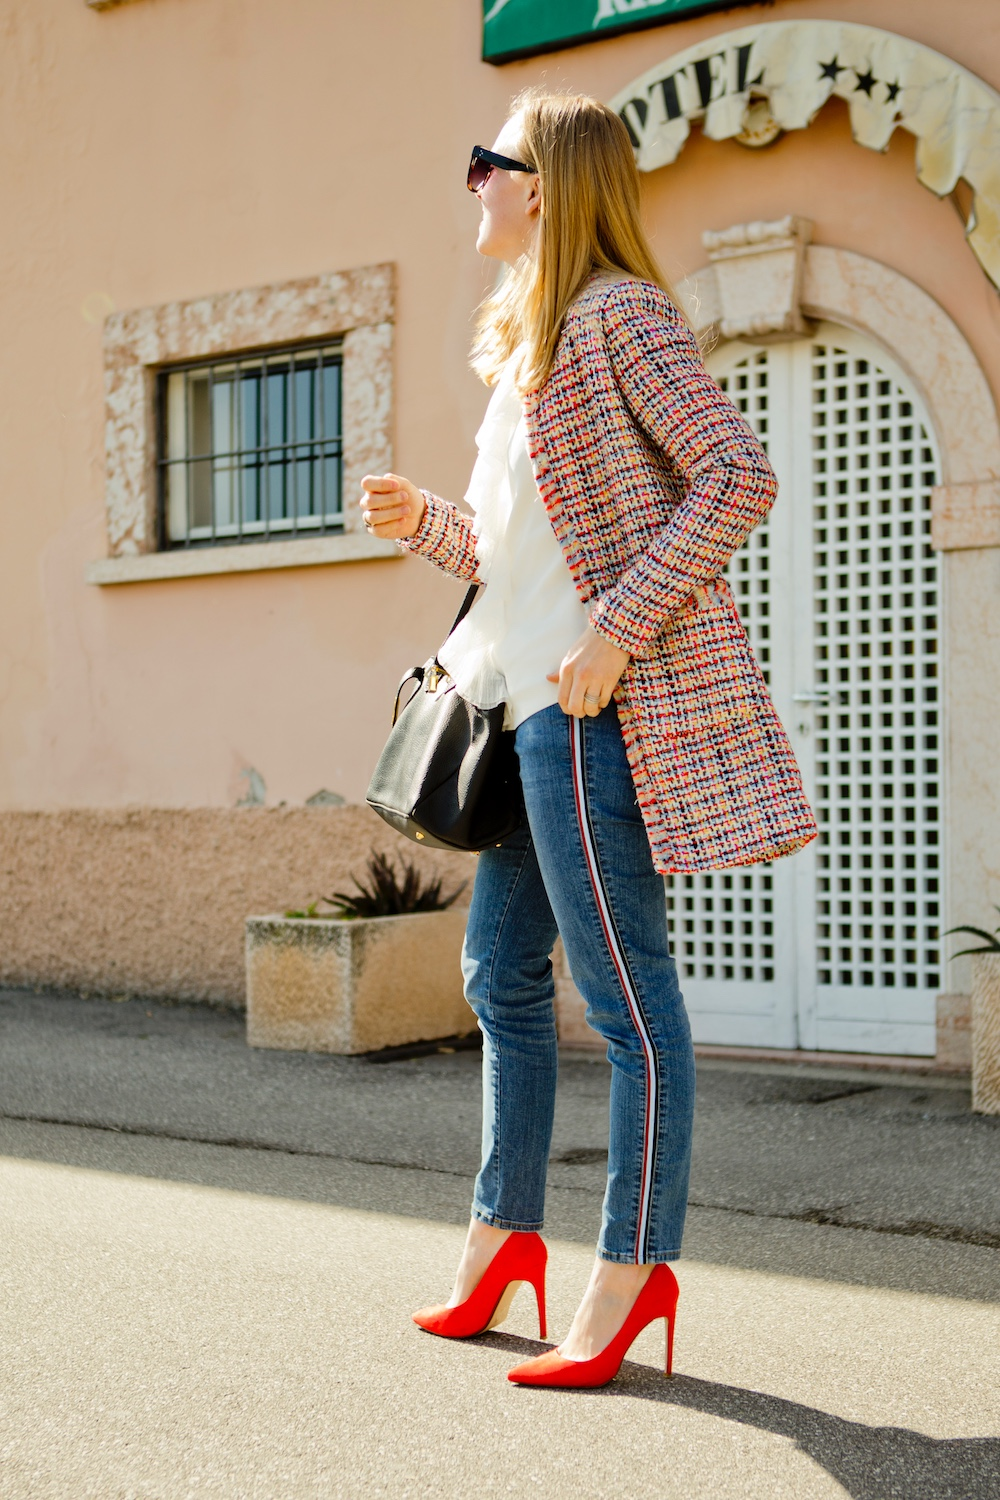 jeans with side stripes, red pumps, bouclé jacket more & more